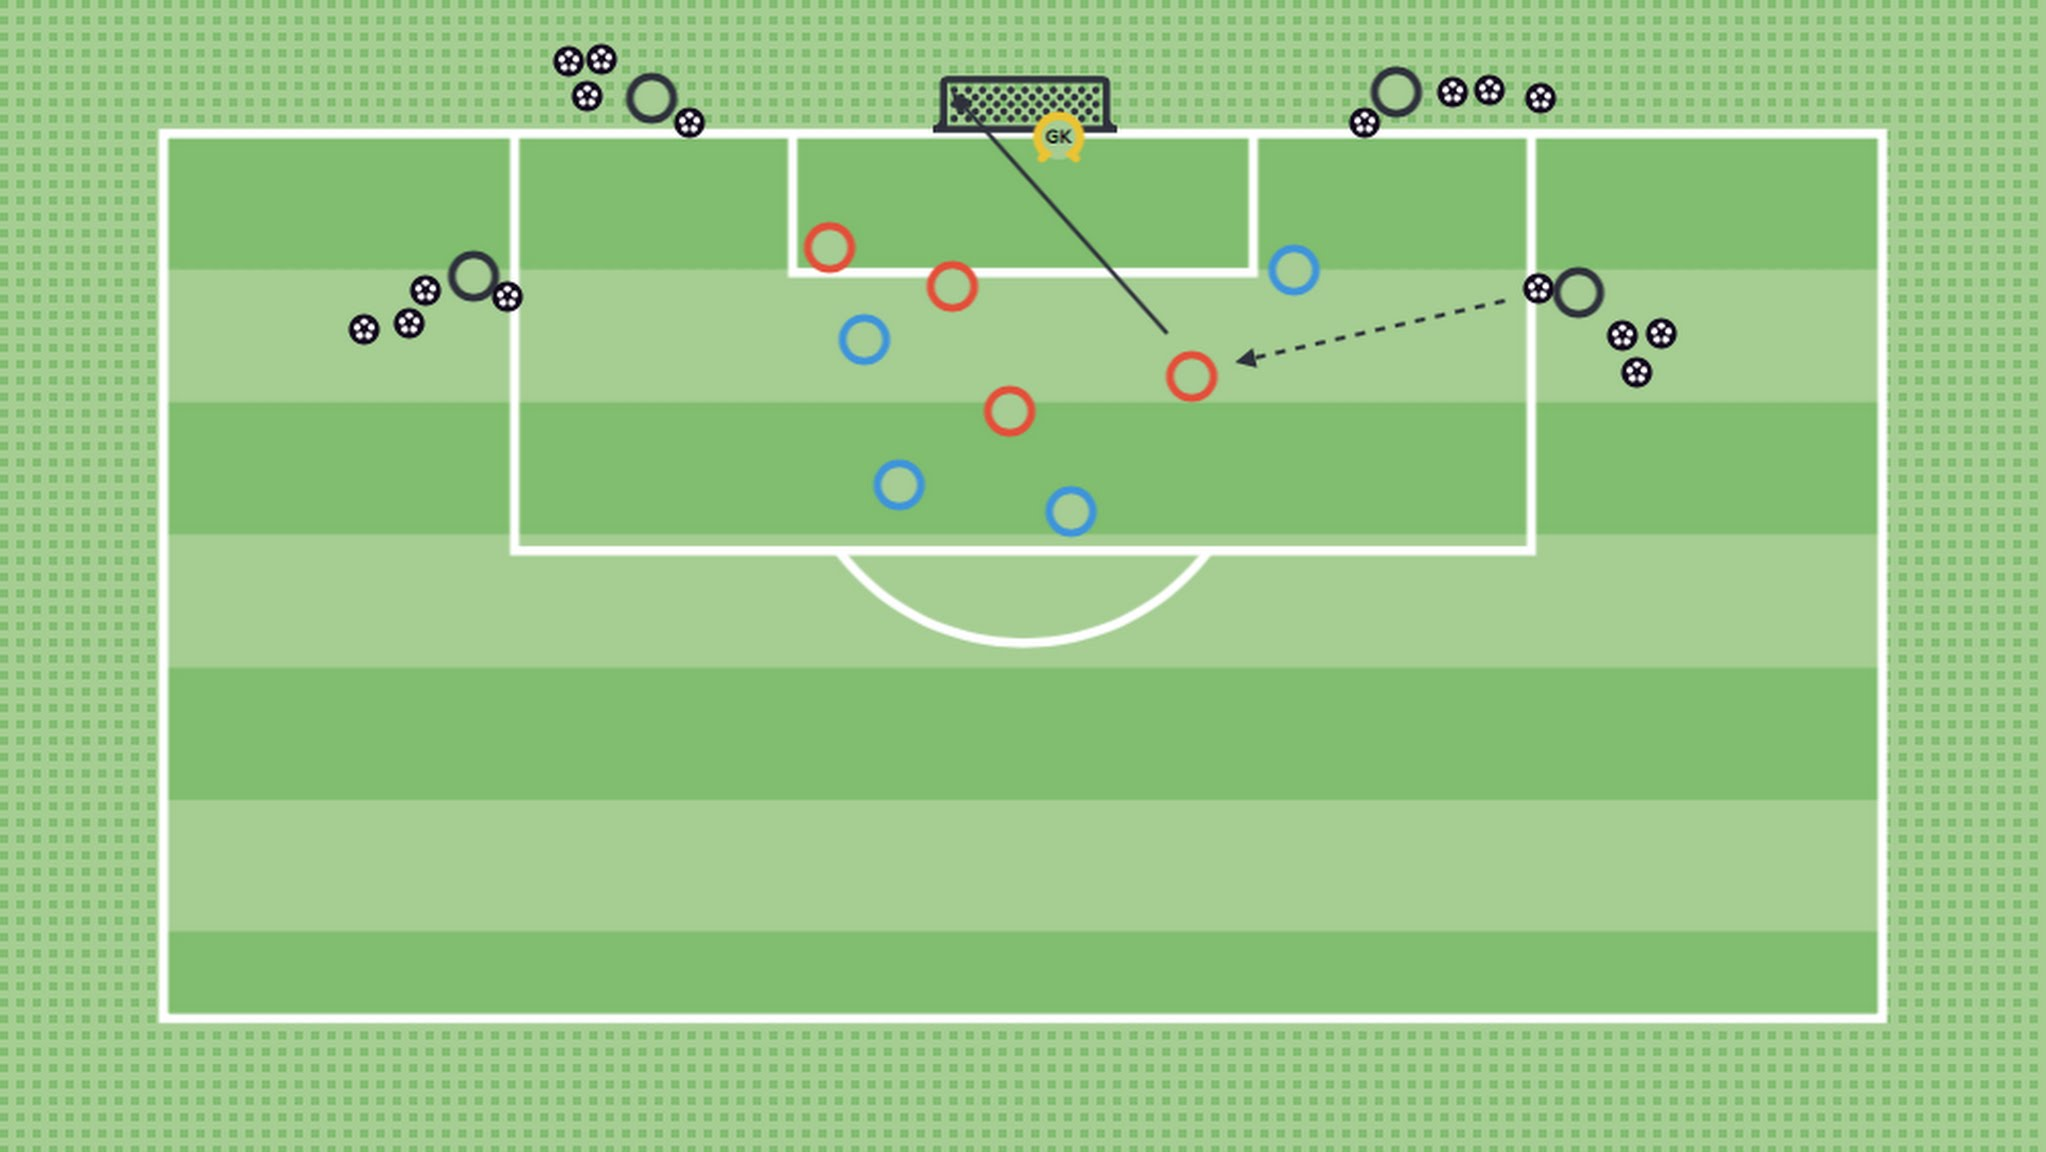 Three Minute Game. 1 touch finish. Winner stays on. Losers serve.